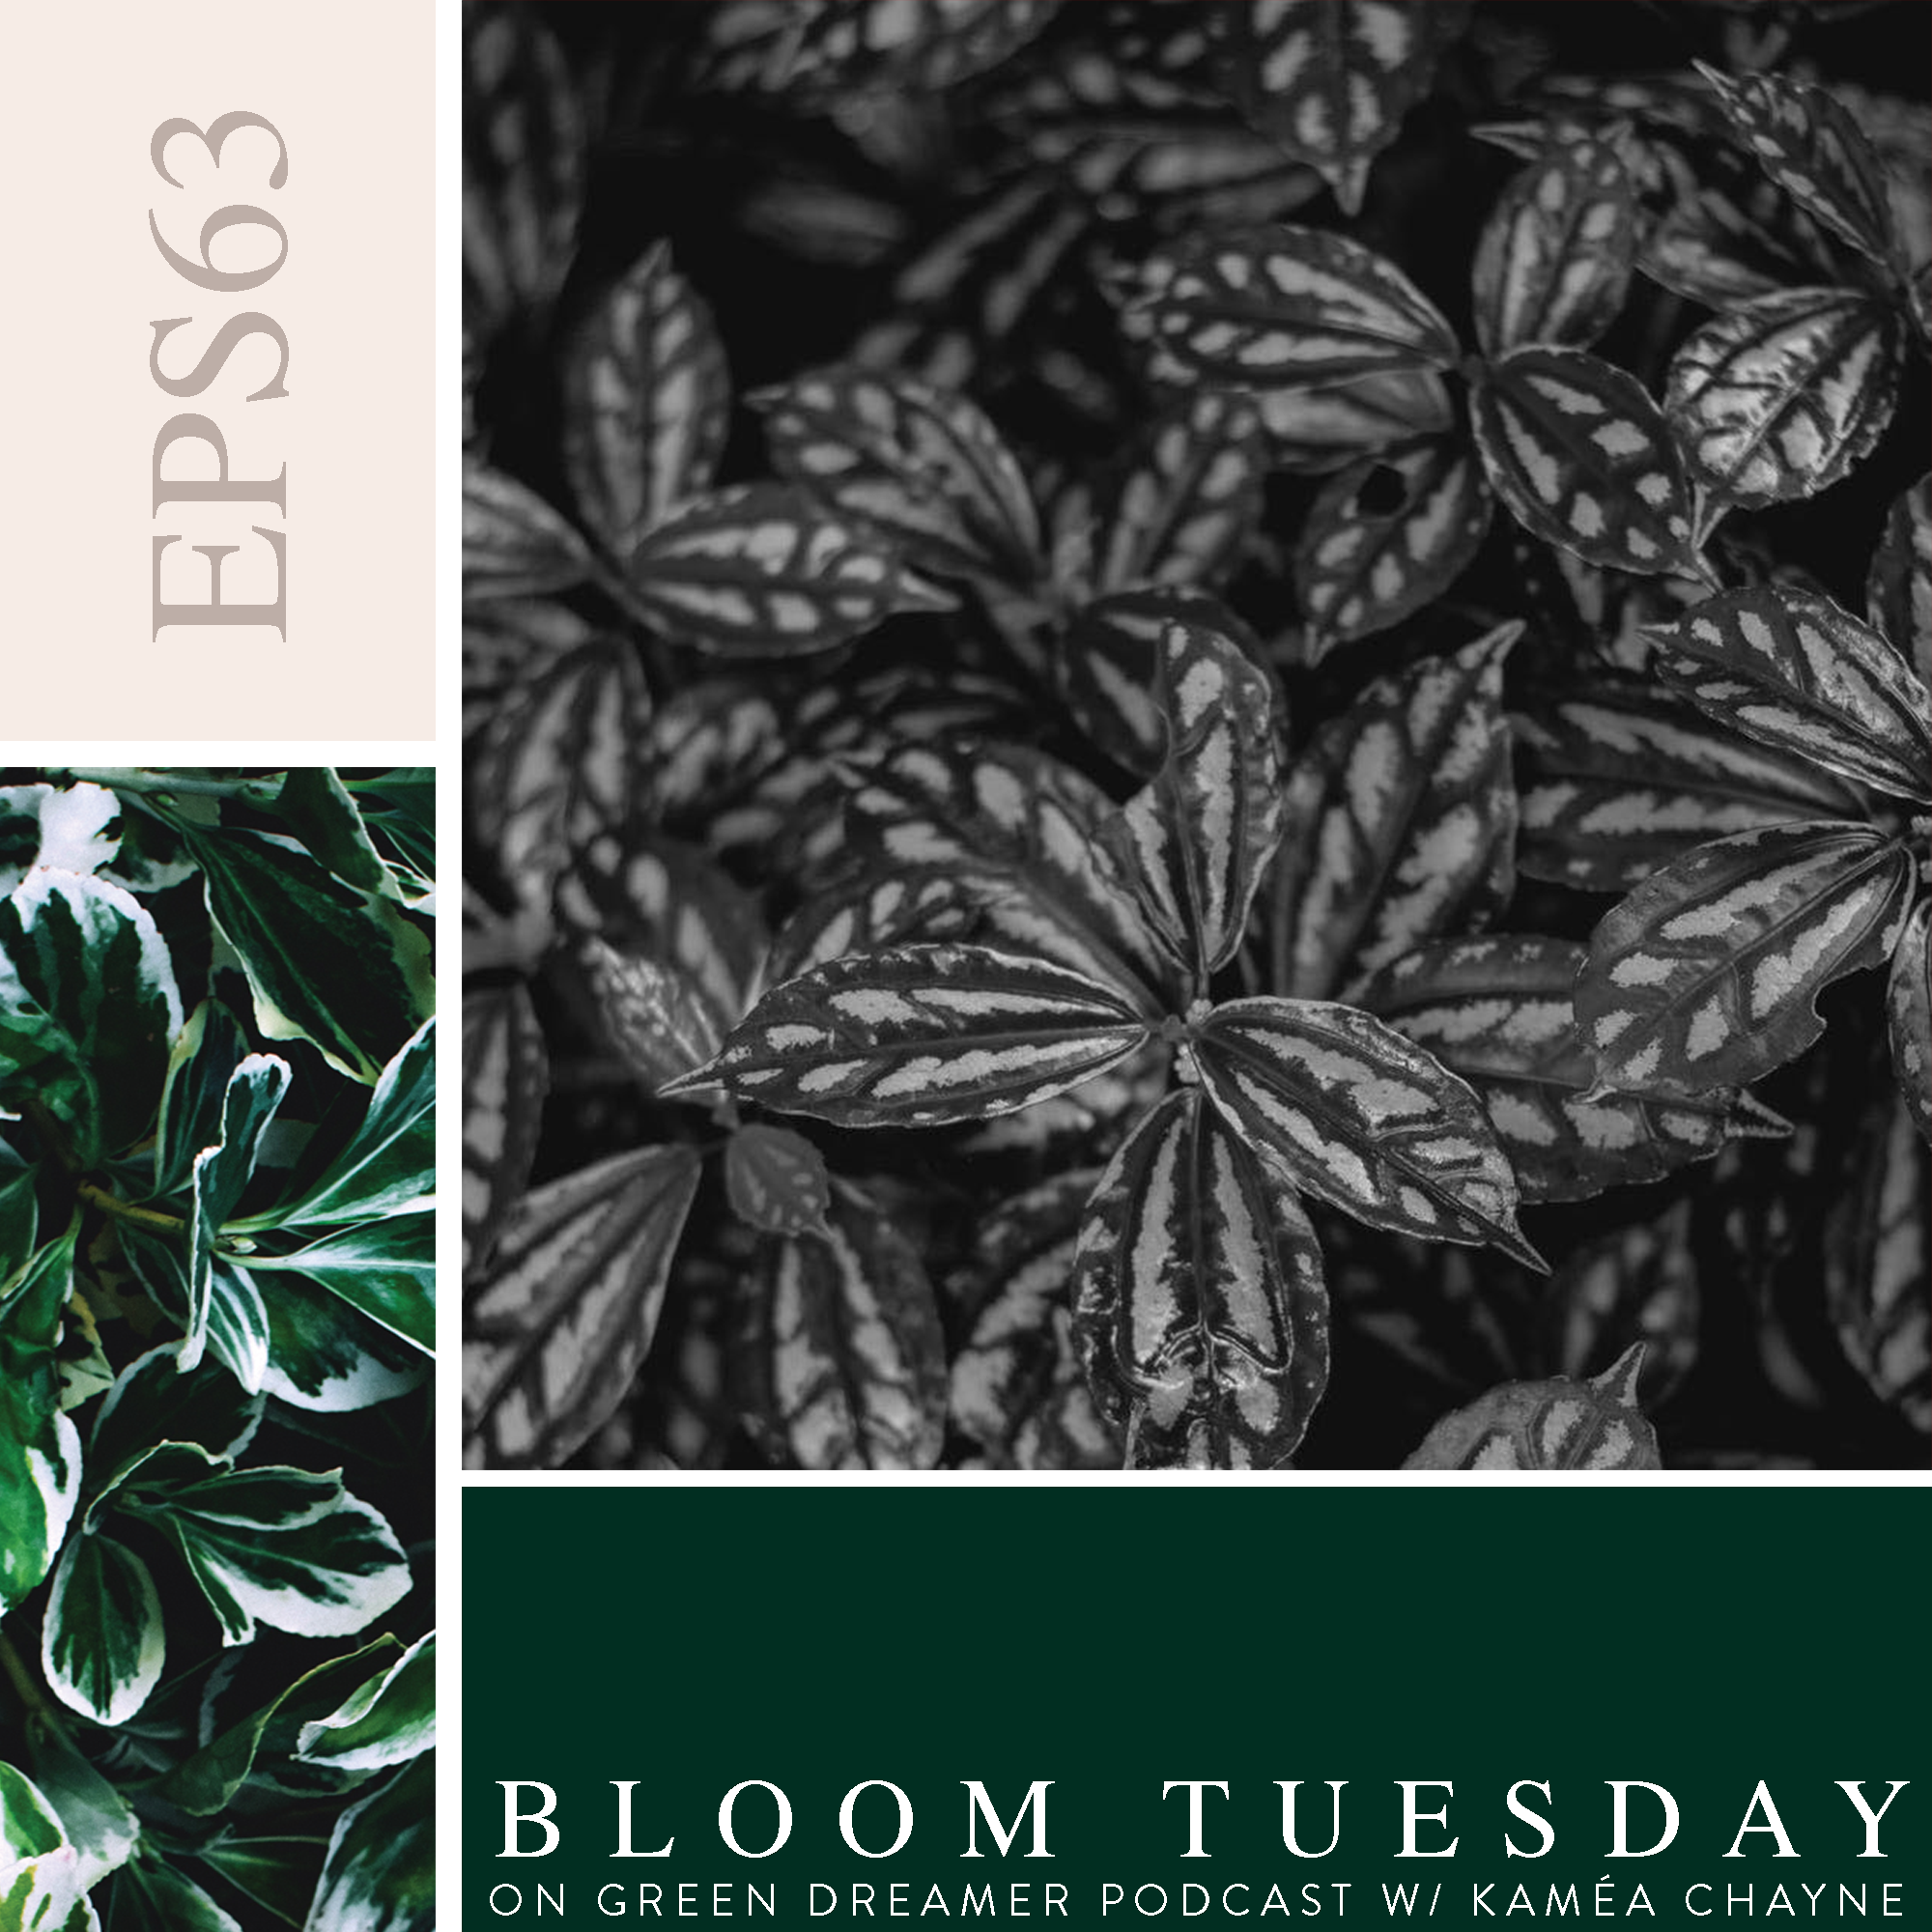 63) BLOOM TUESDAY